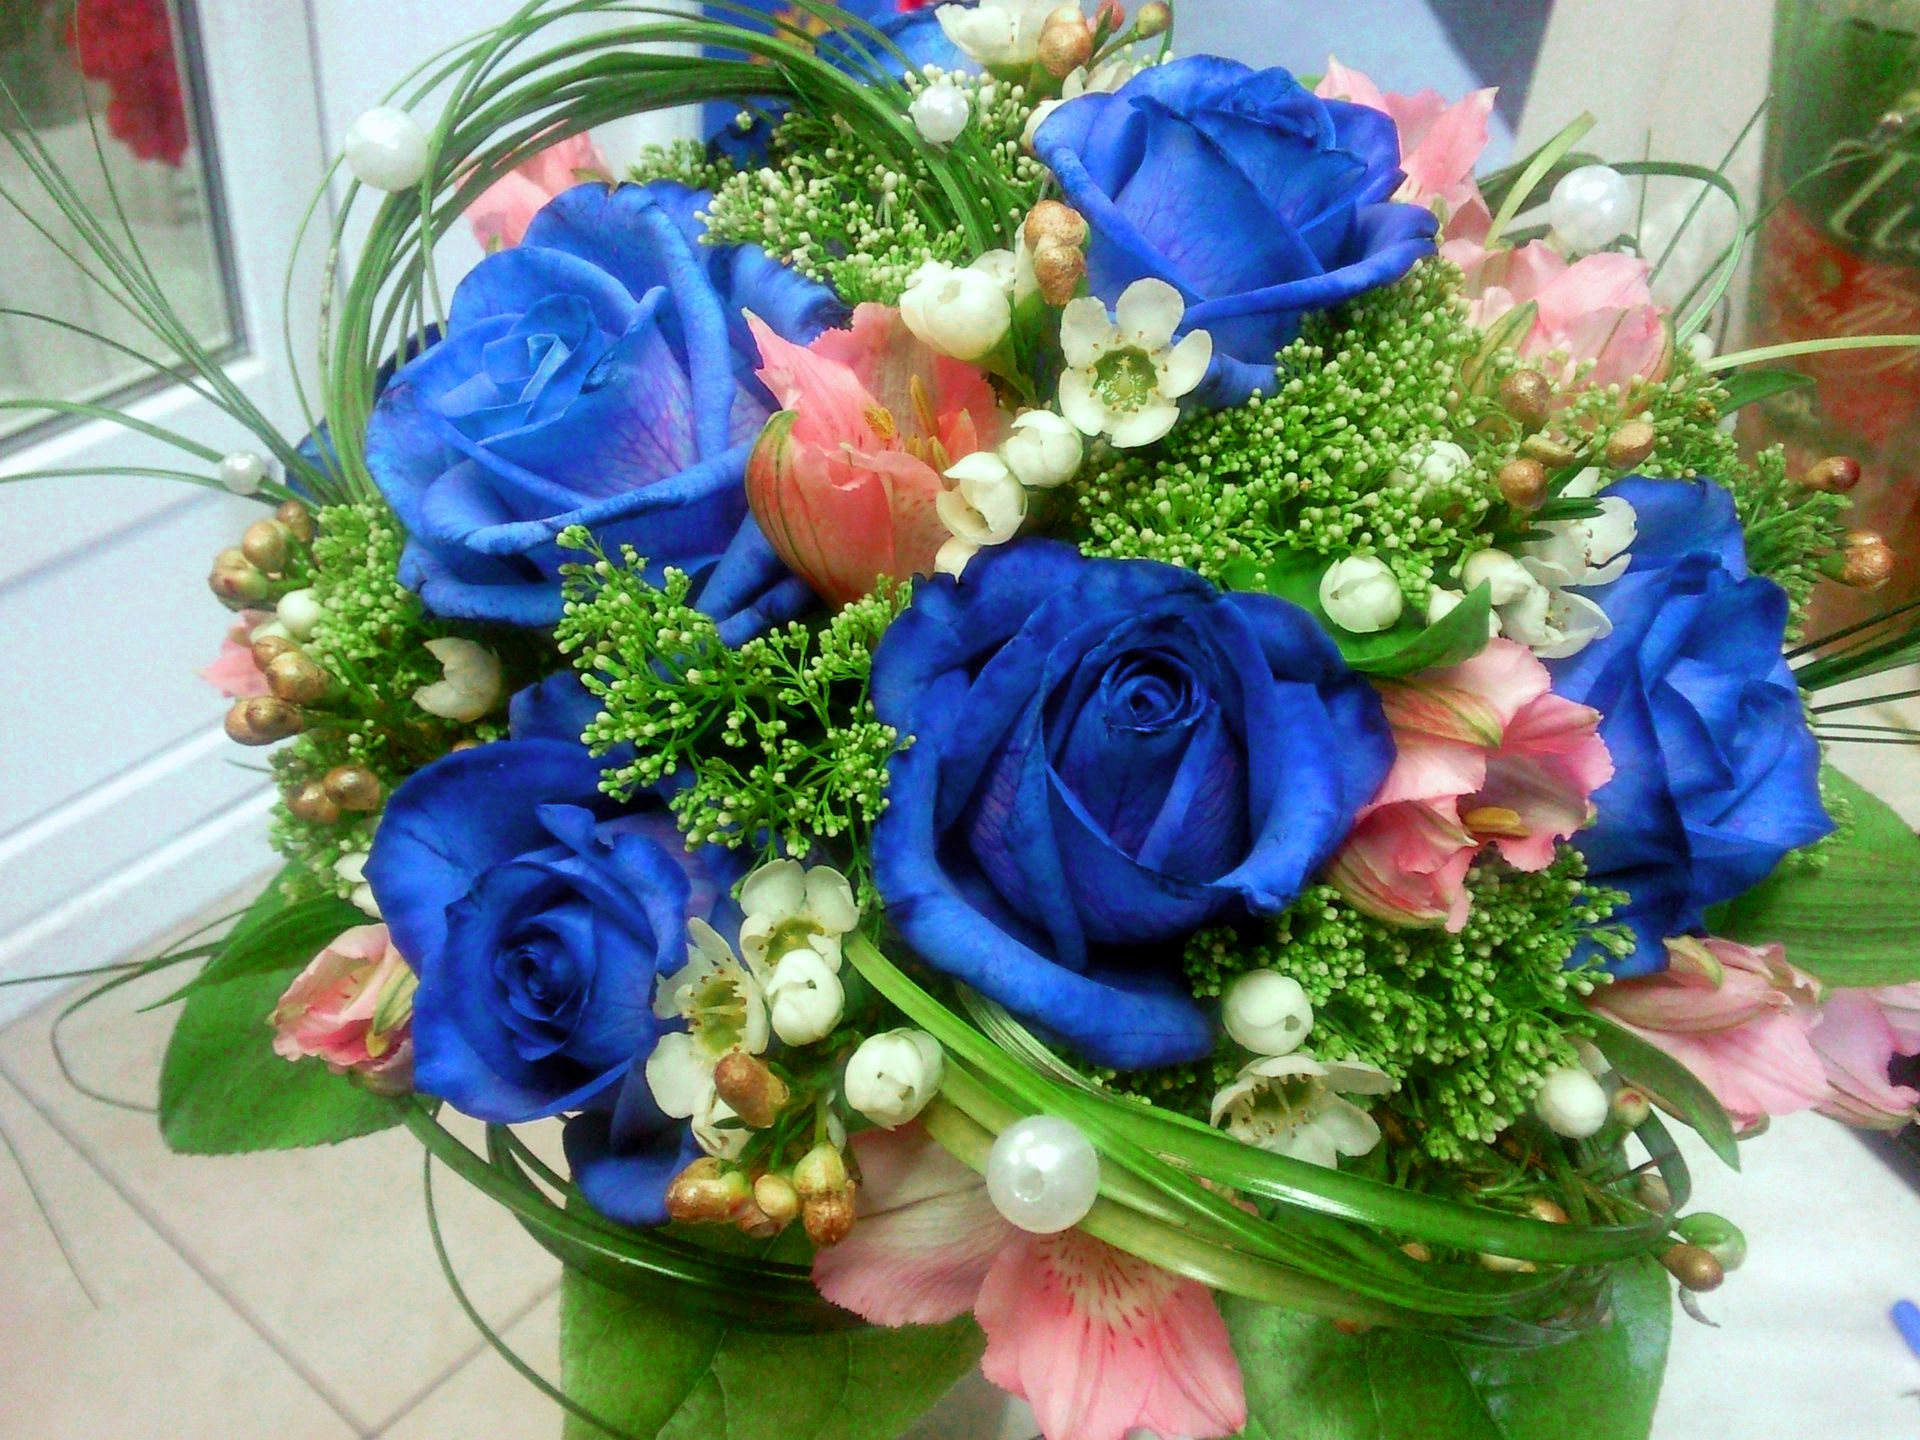 Green And Blue Roses Wallpaper